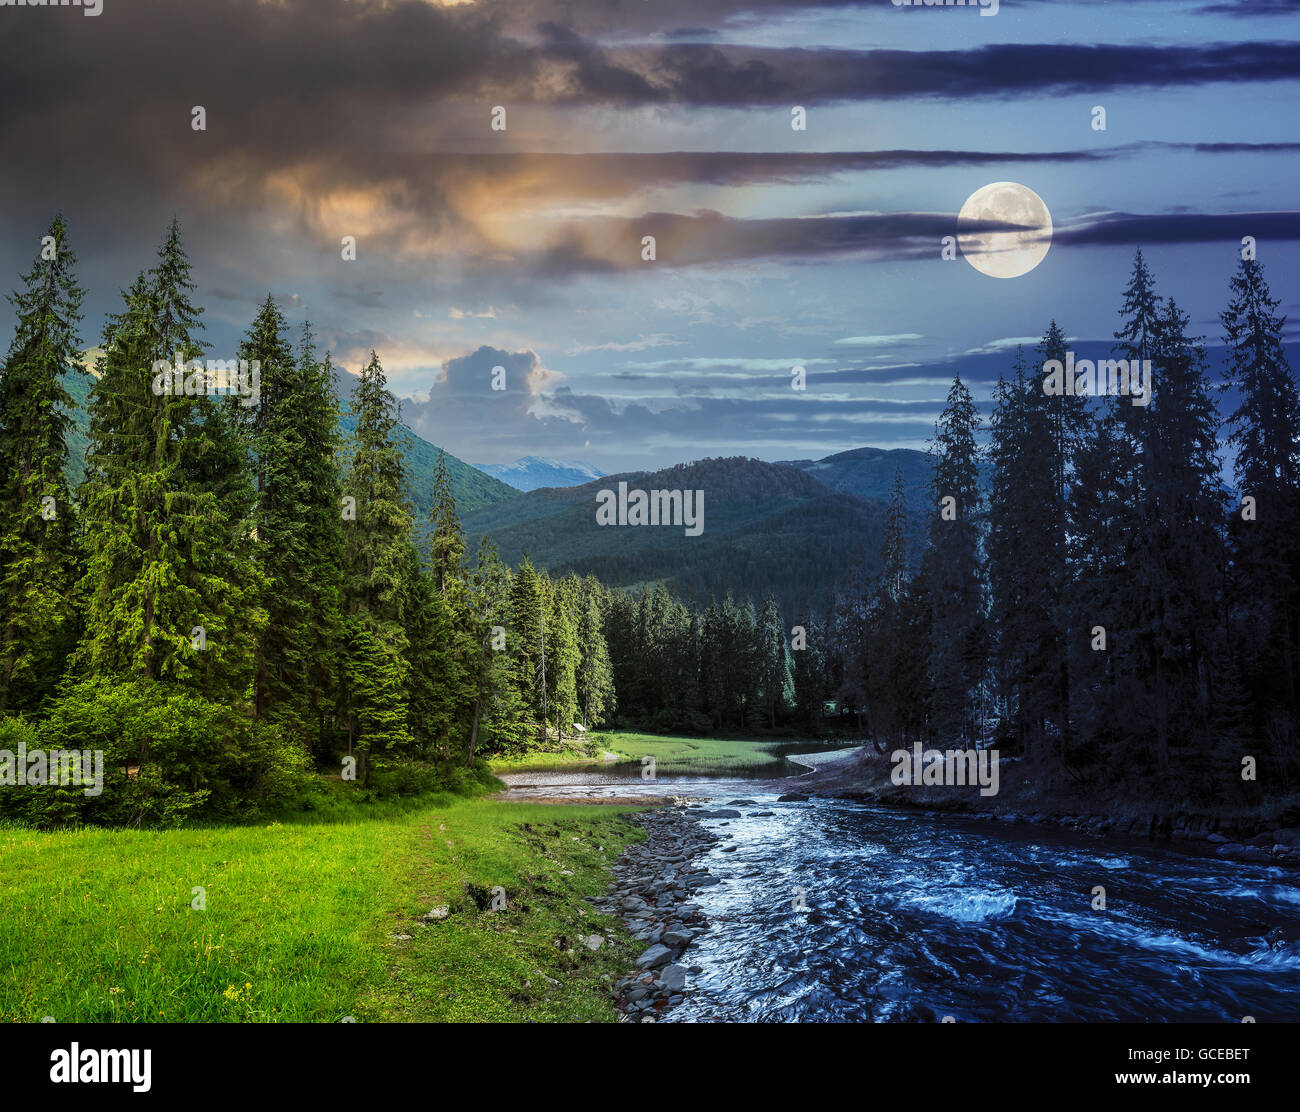 Collage Day And Night Landscape With Pine Trees In Mountains And A Stock Photo